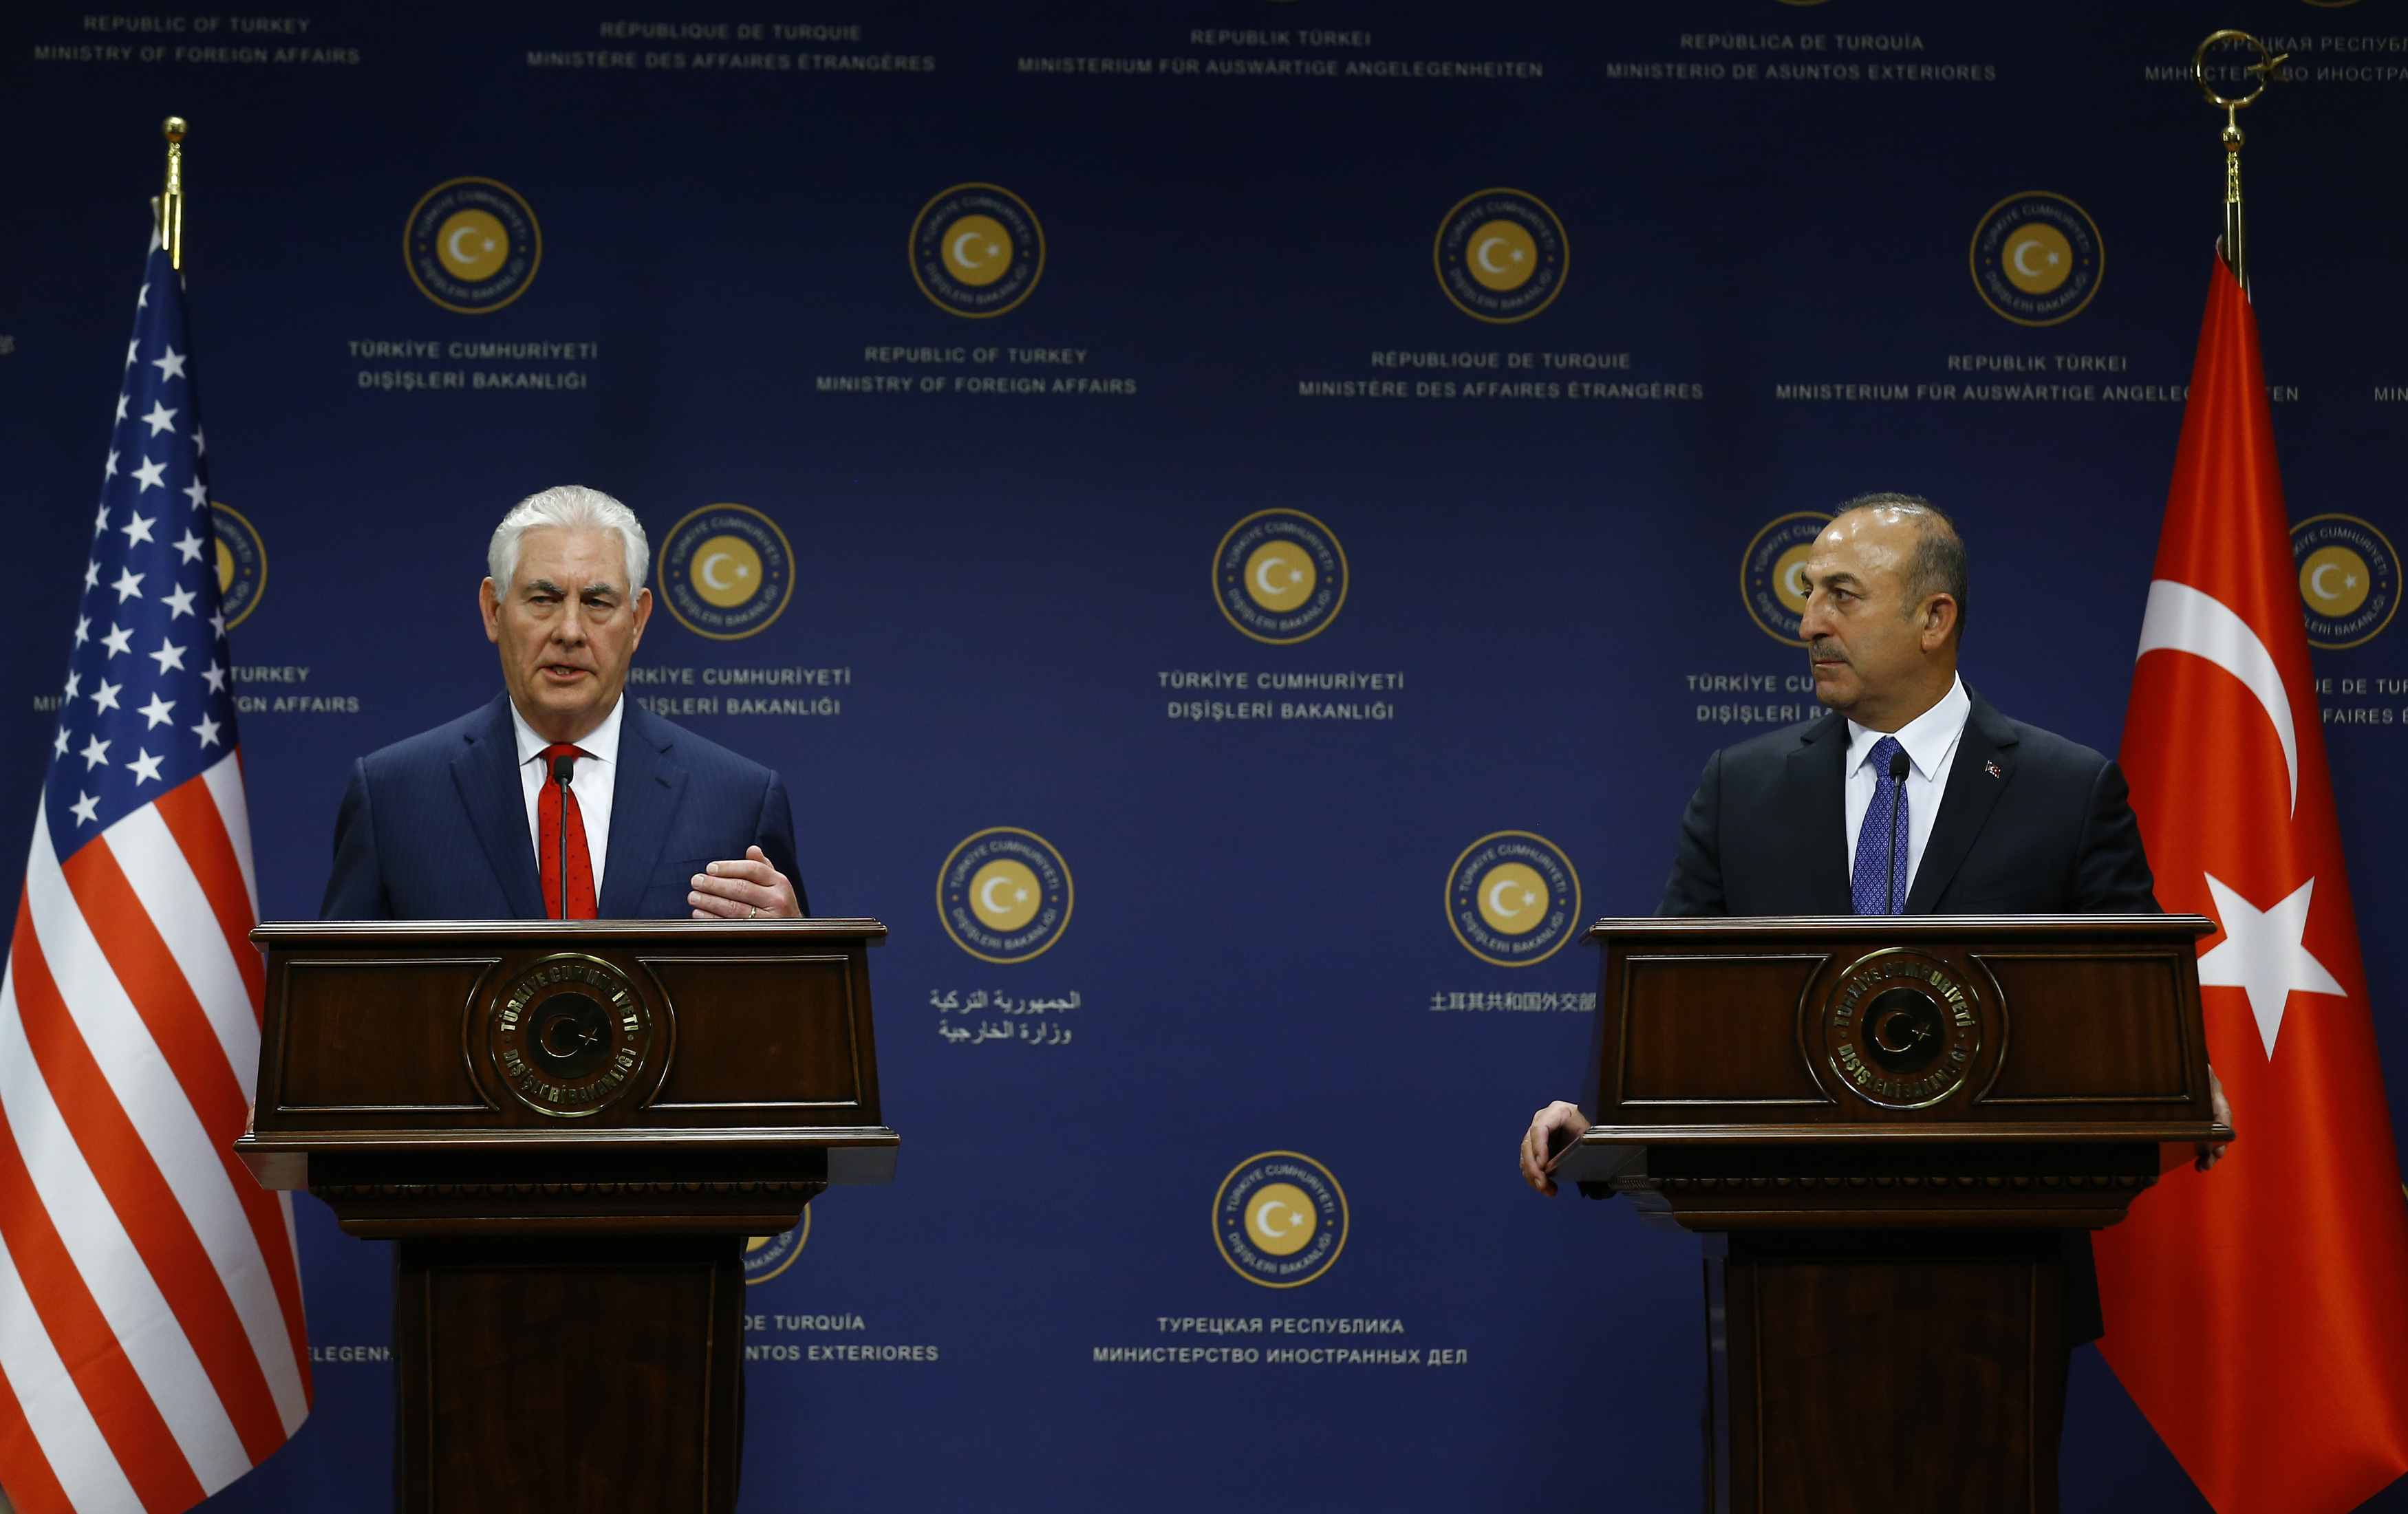 U.S. Secretary of State Rex Tillerson and Turkish Foreign Minister Mevlut Cavusoglu attend a news conference in Ankara, Turkey, March 30, 2017. REUTERS/Umit Bektas